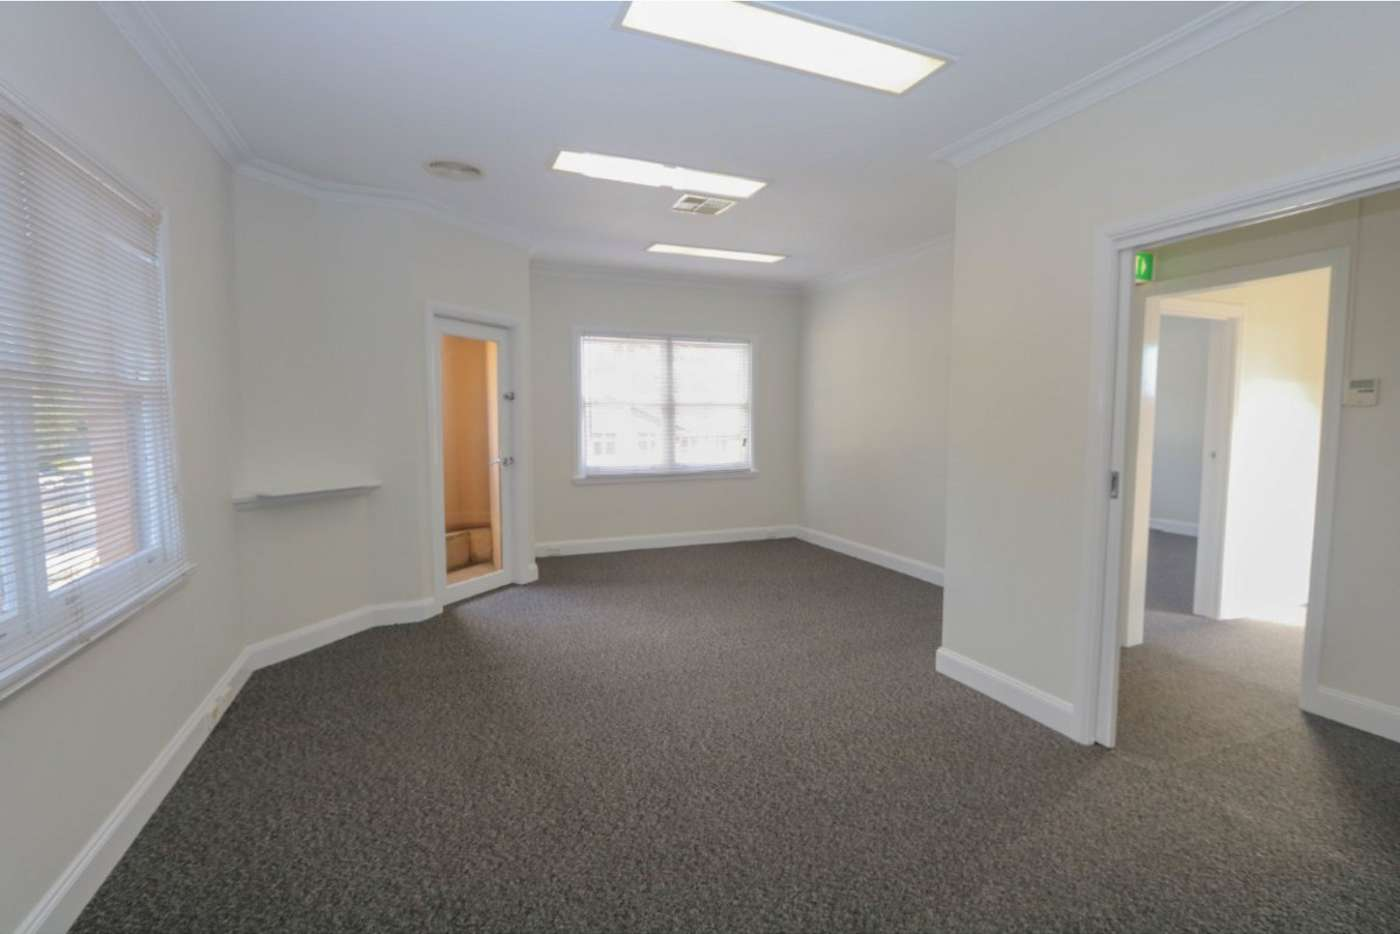 Main view of Homely house listing, 1/203 George Street, Bathurst NSW 2795